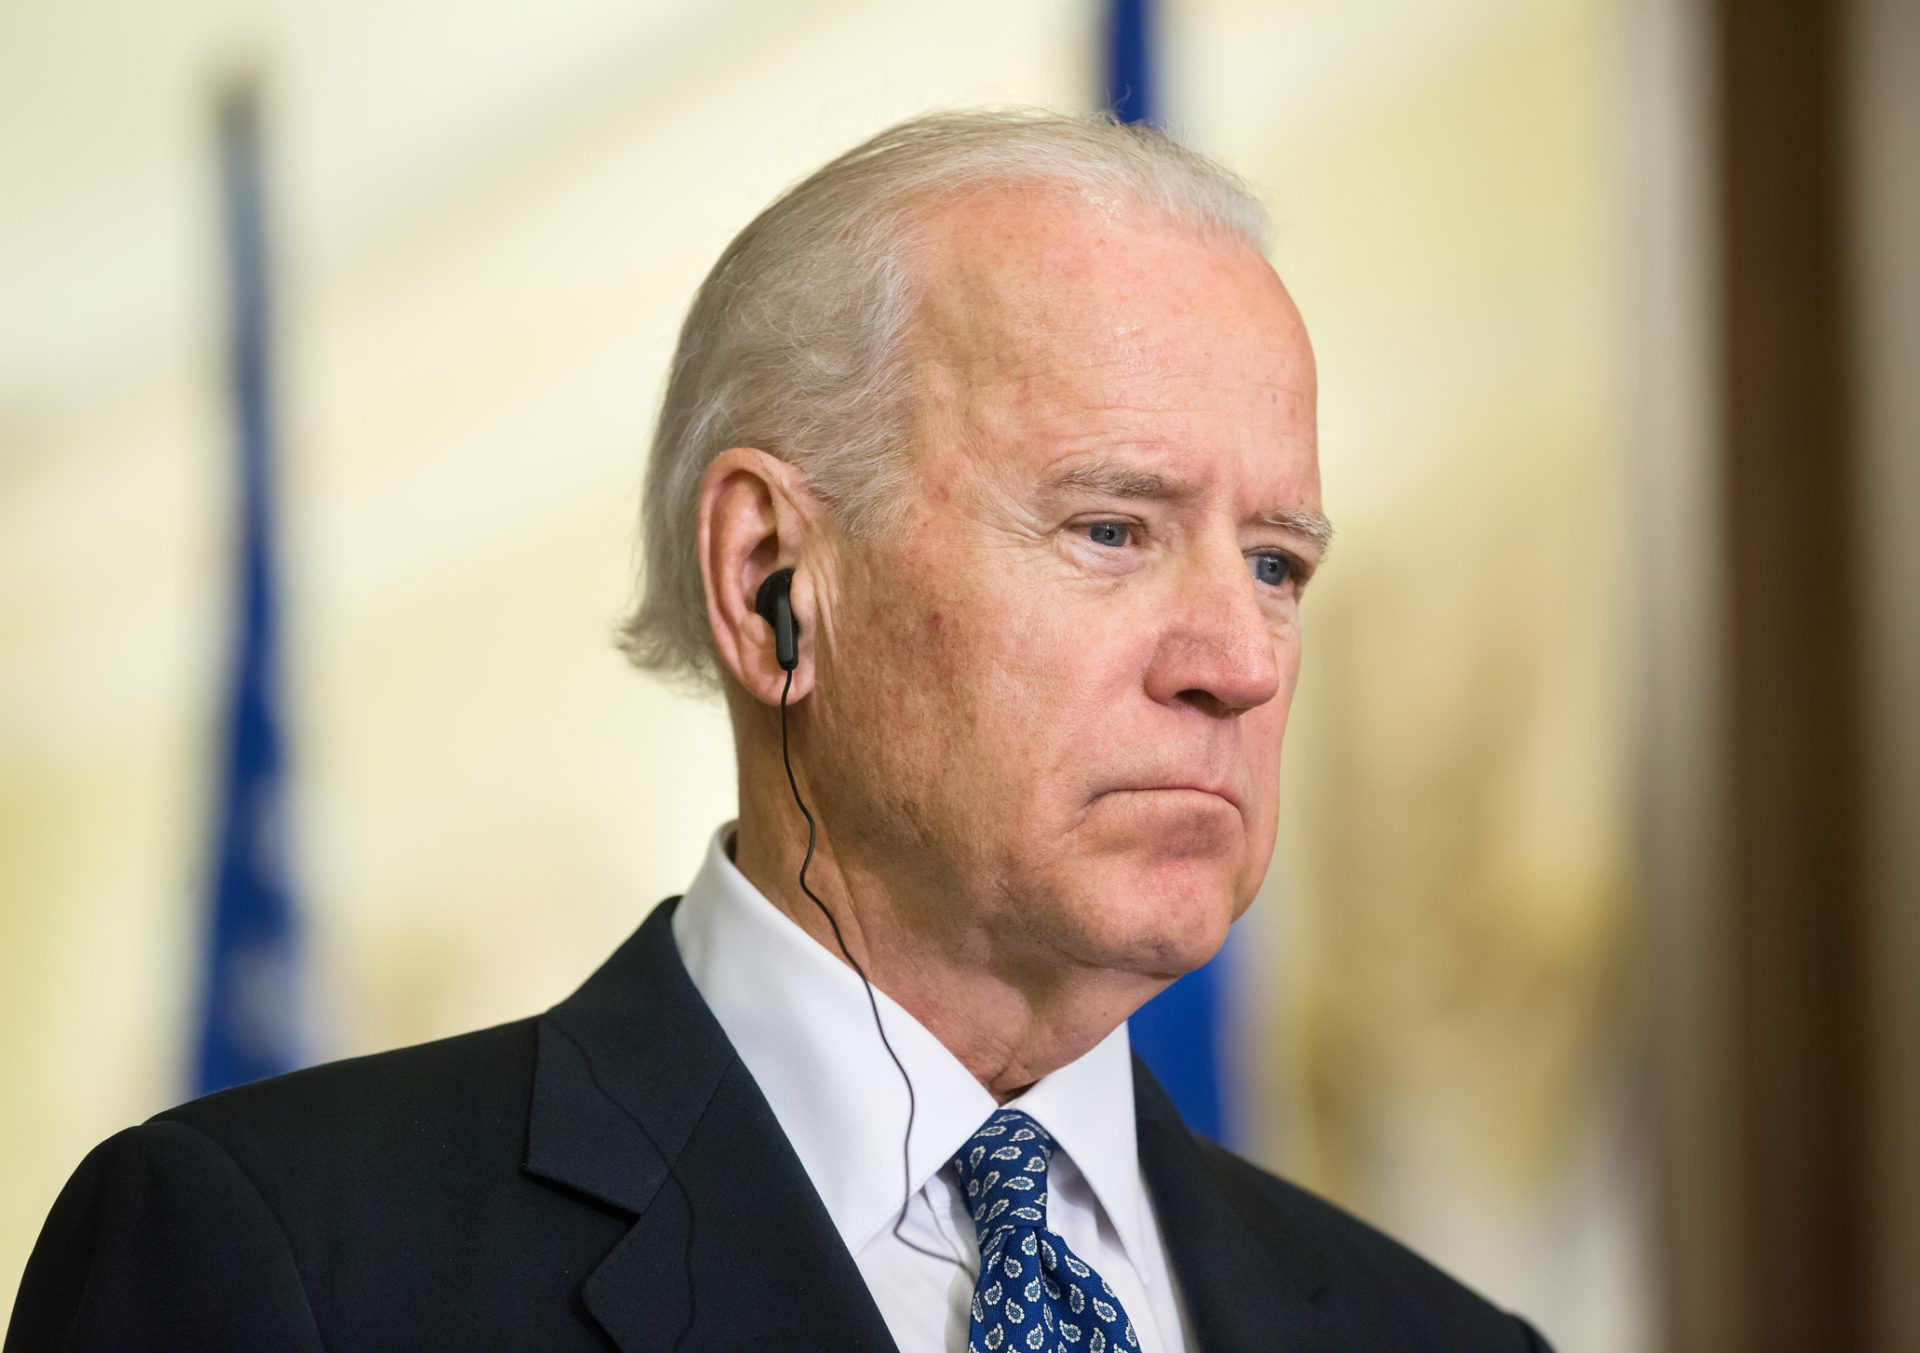 President Joe Biden has announced the creation of a new China task force in the Defense Department. Its focus will be assessing American military strategy on handling threats posed by the Chinese Communist Party.